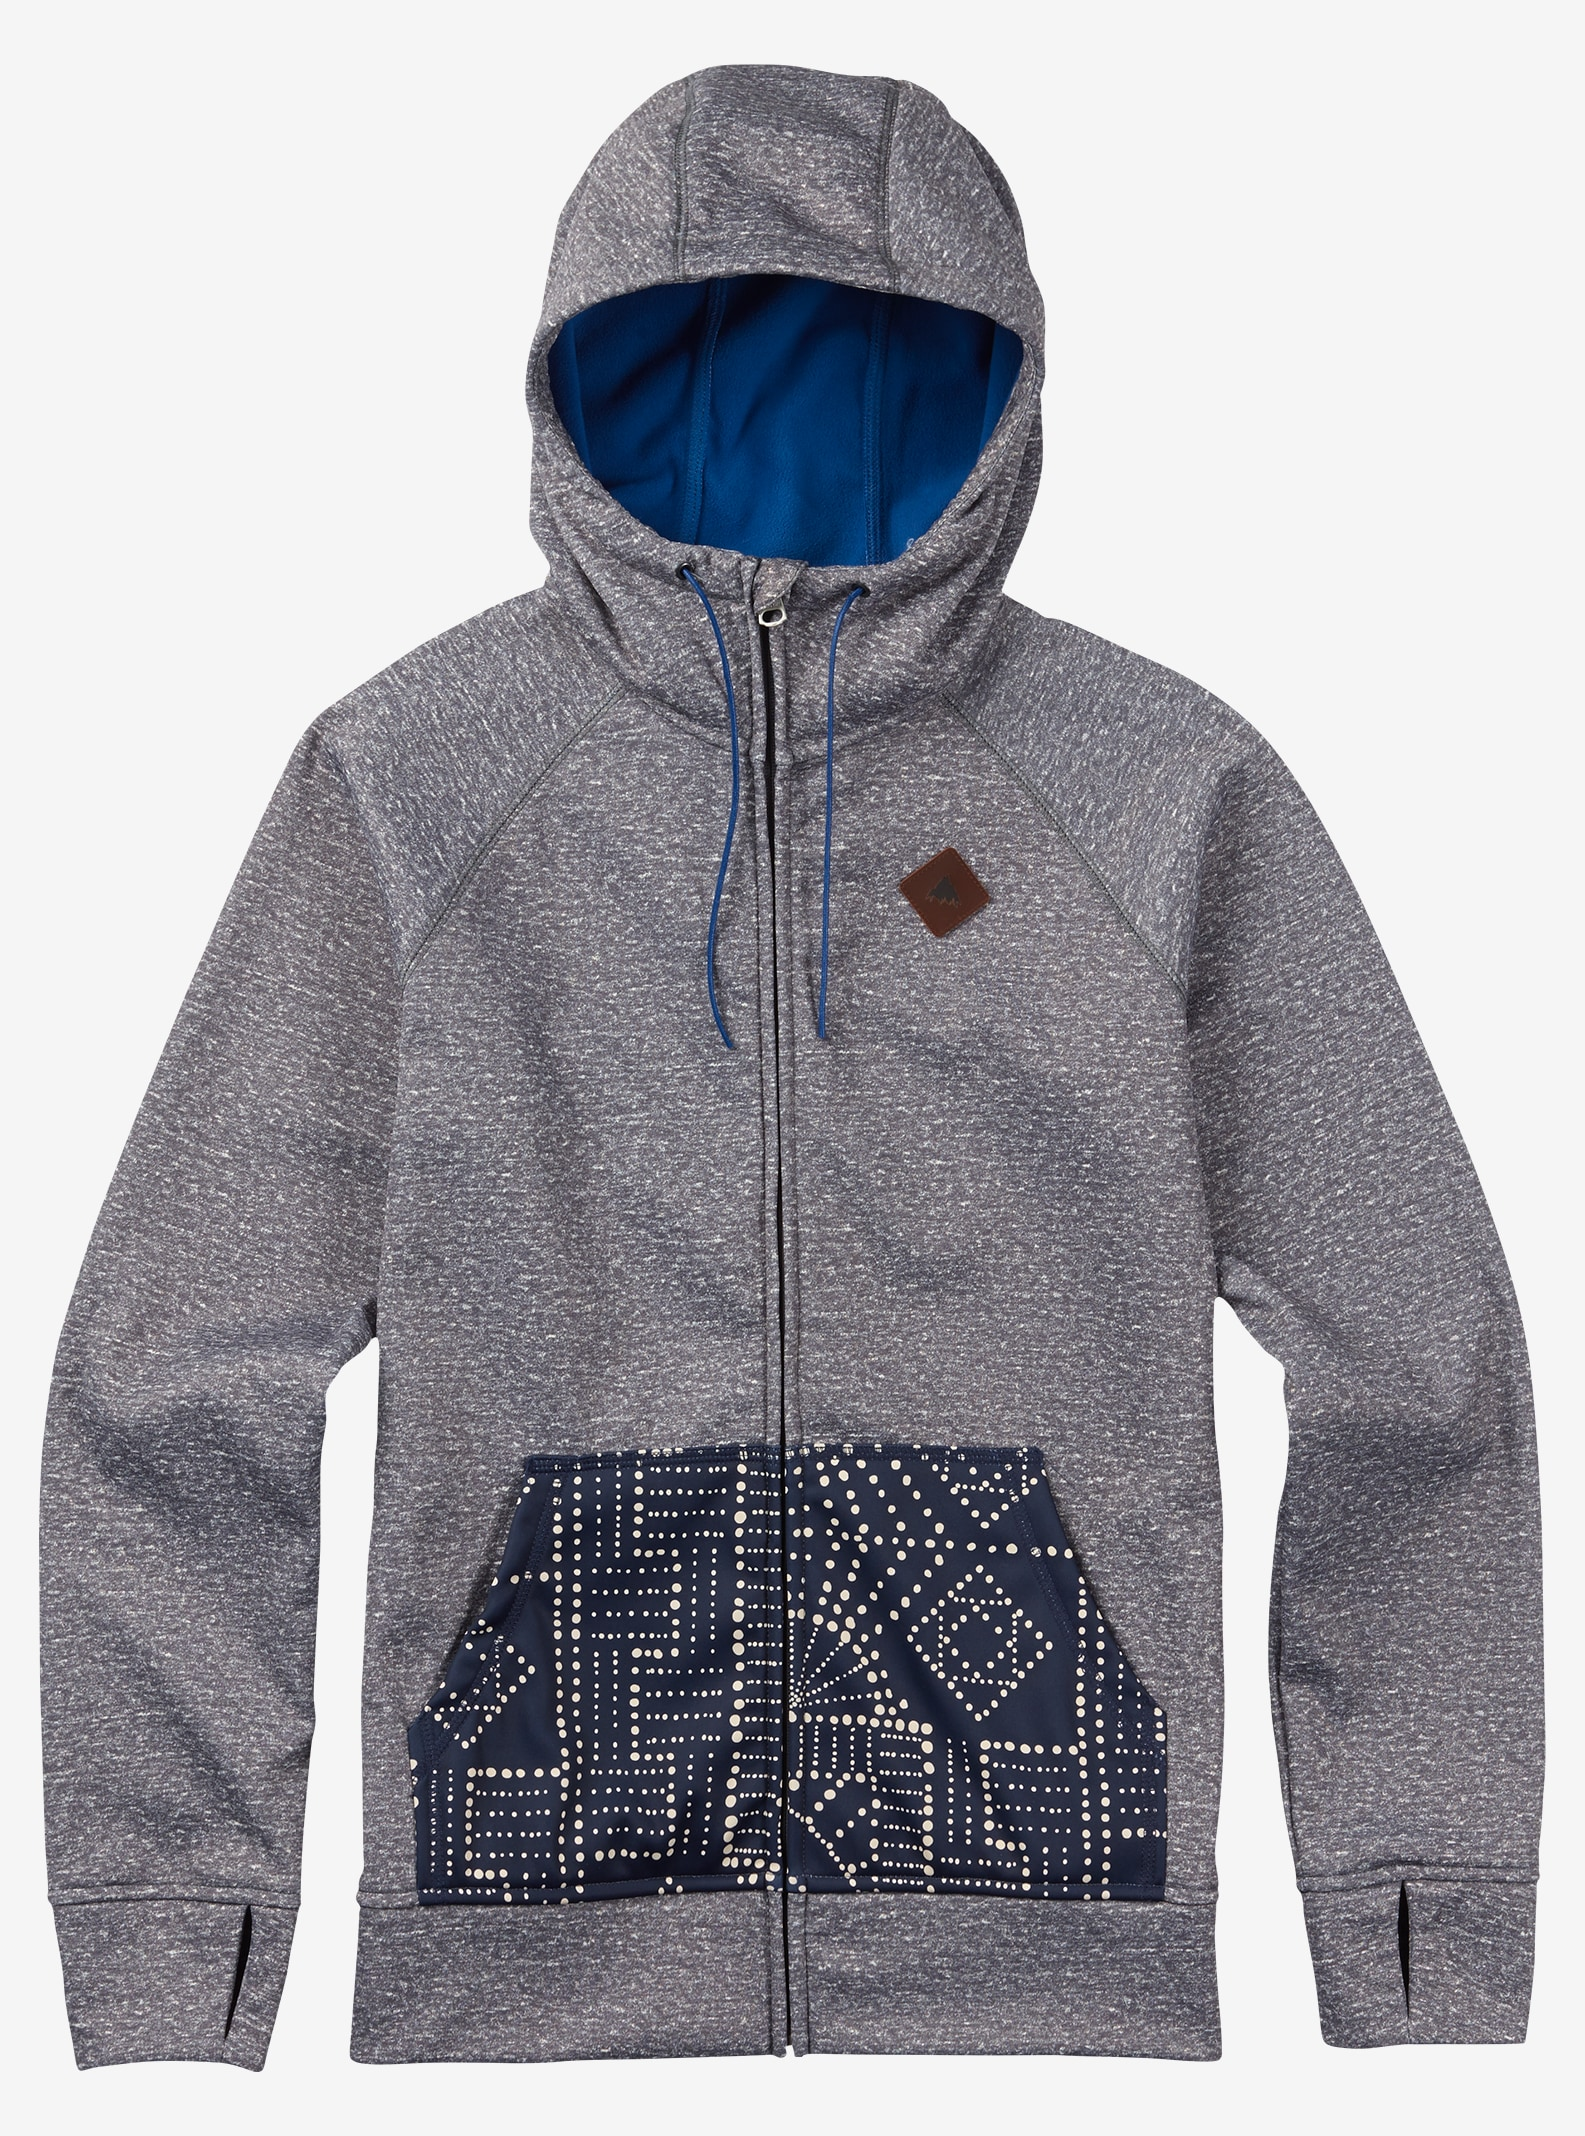 Burton Scoop Hoodie shown in Shade Heather